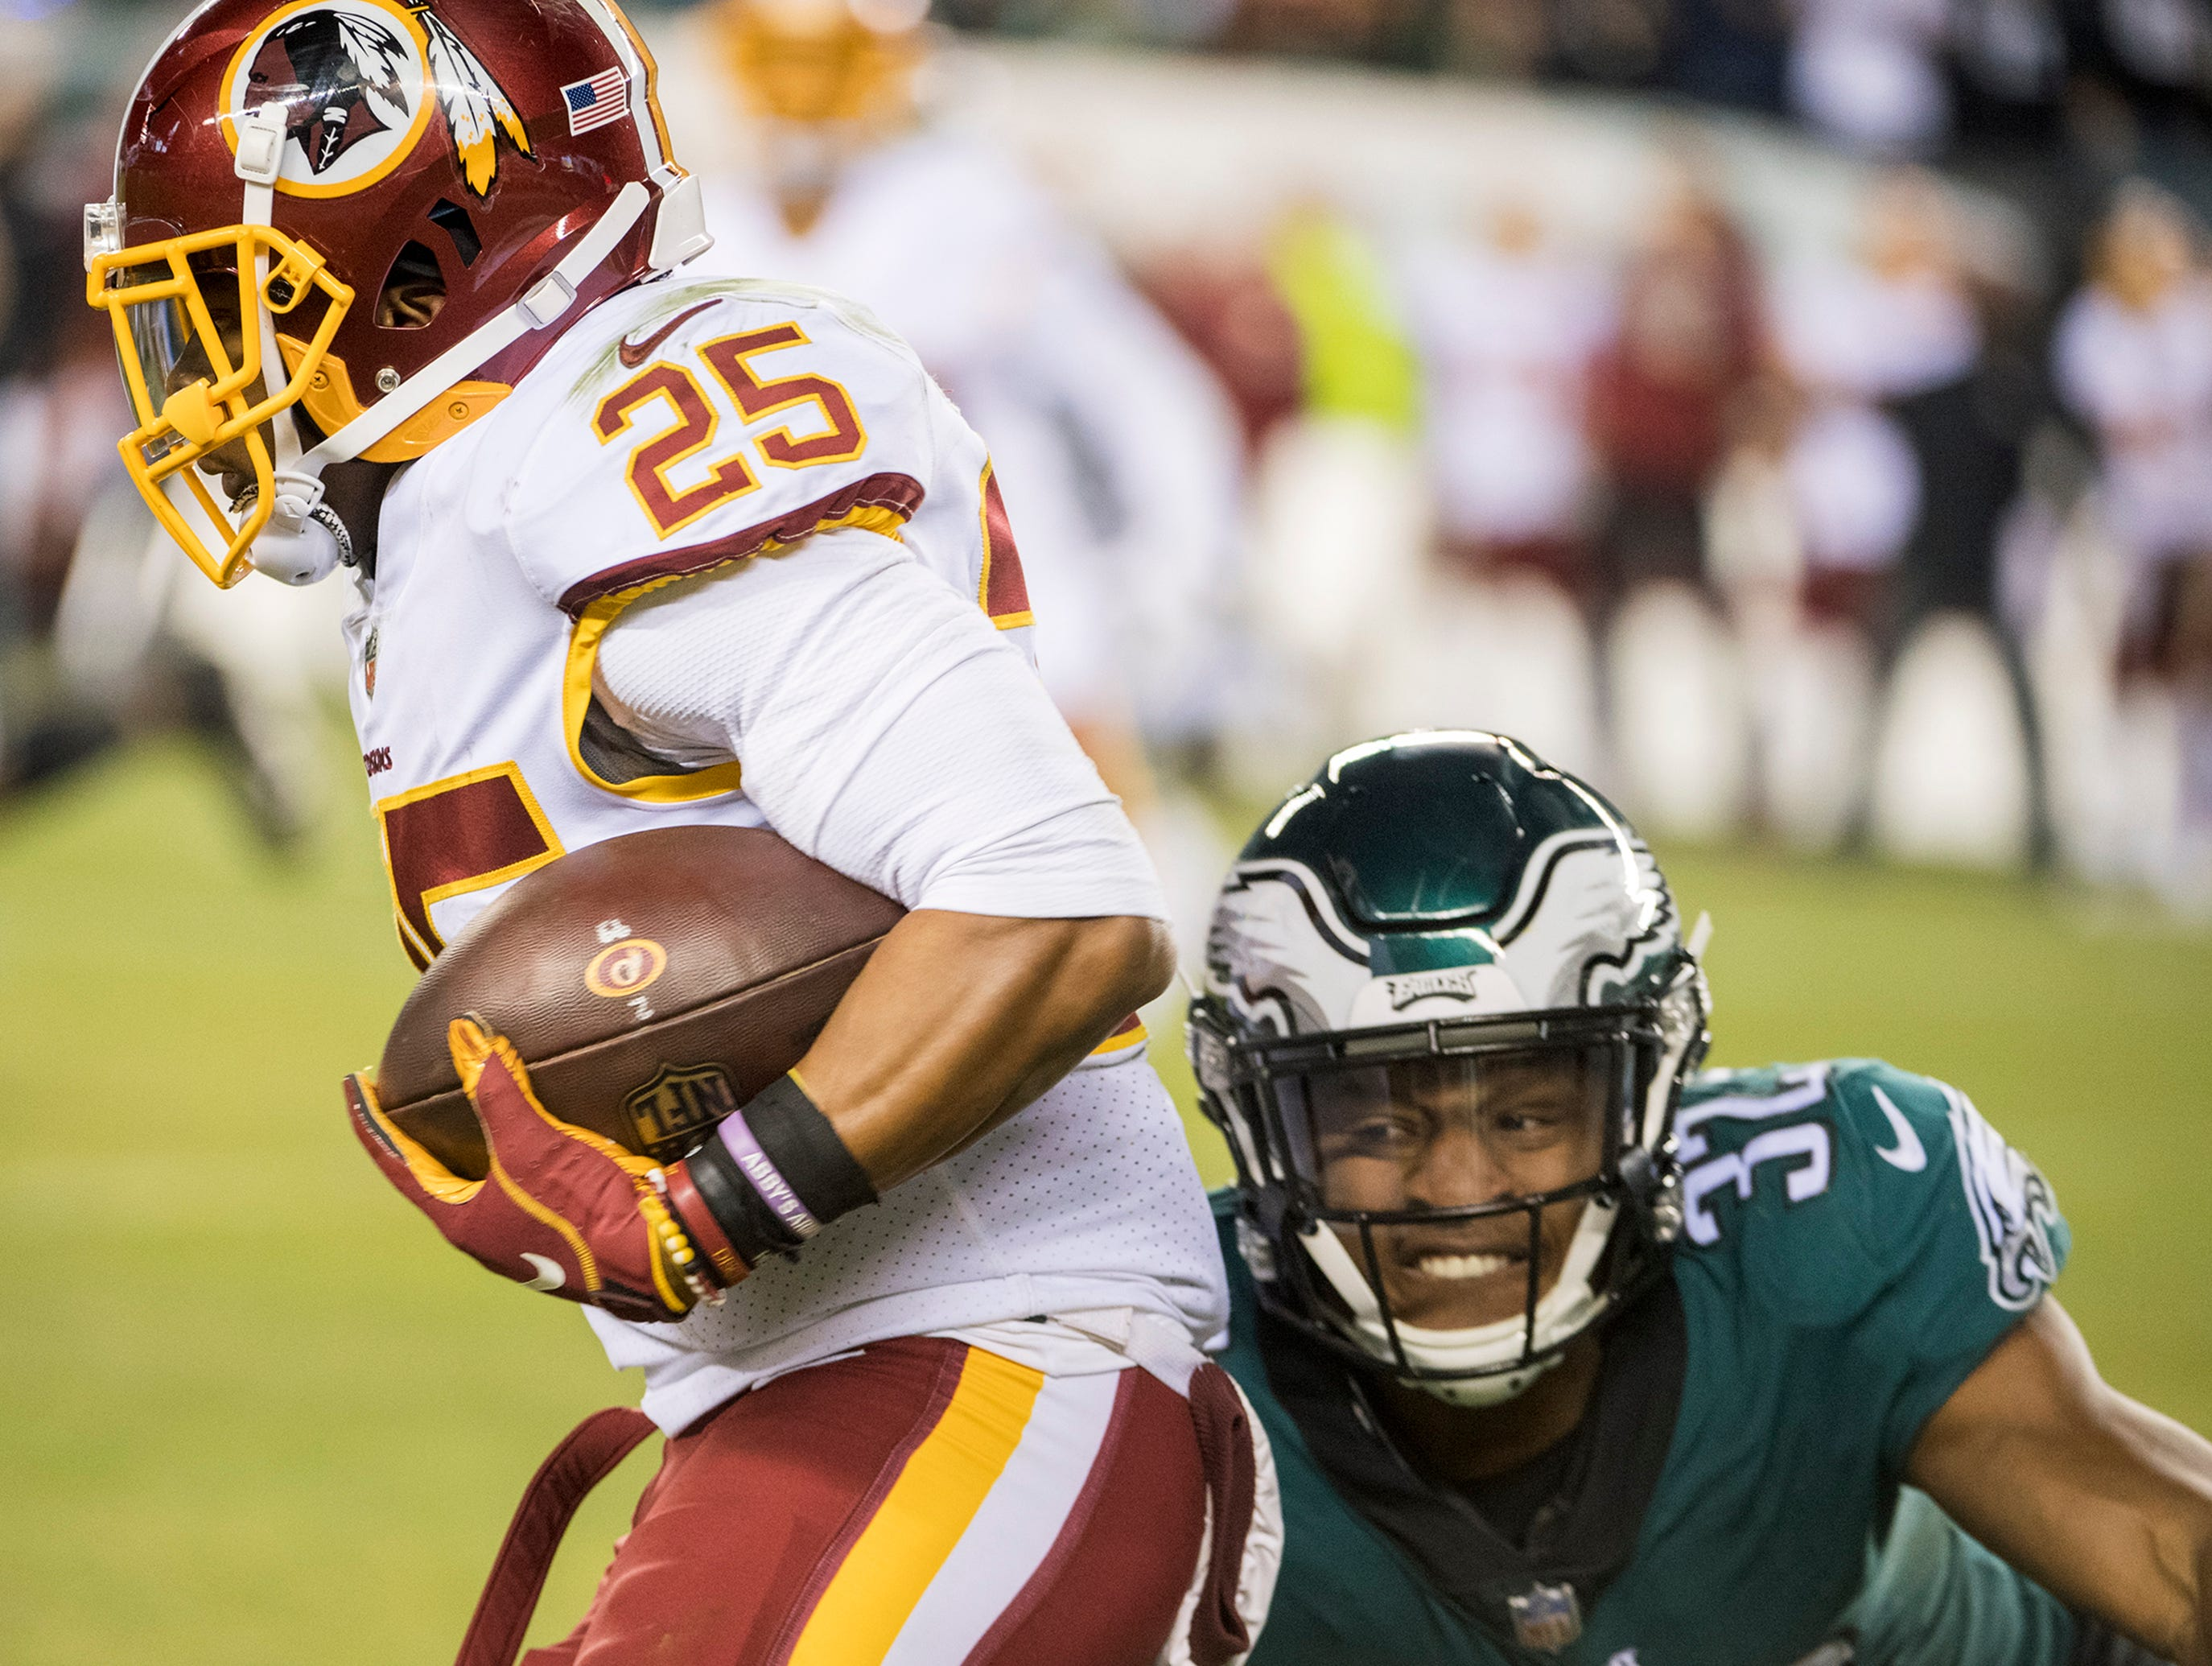 Eagles' Rasul Douglas (32) tackles Chris Thompson (25) Monday, Dec. 3, 2018 in Philadelphia. The Eagles won 28-13.